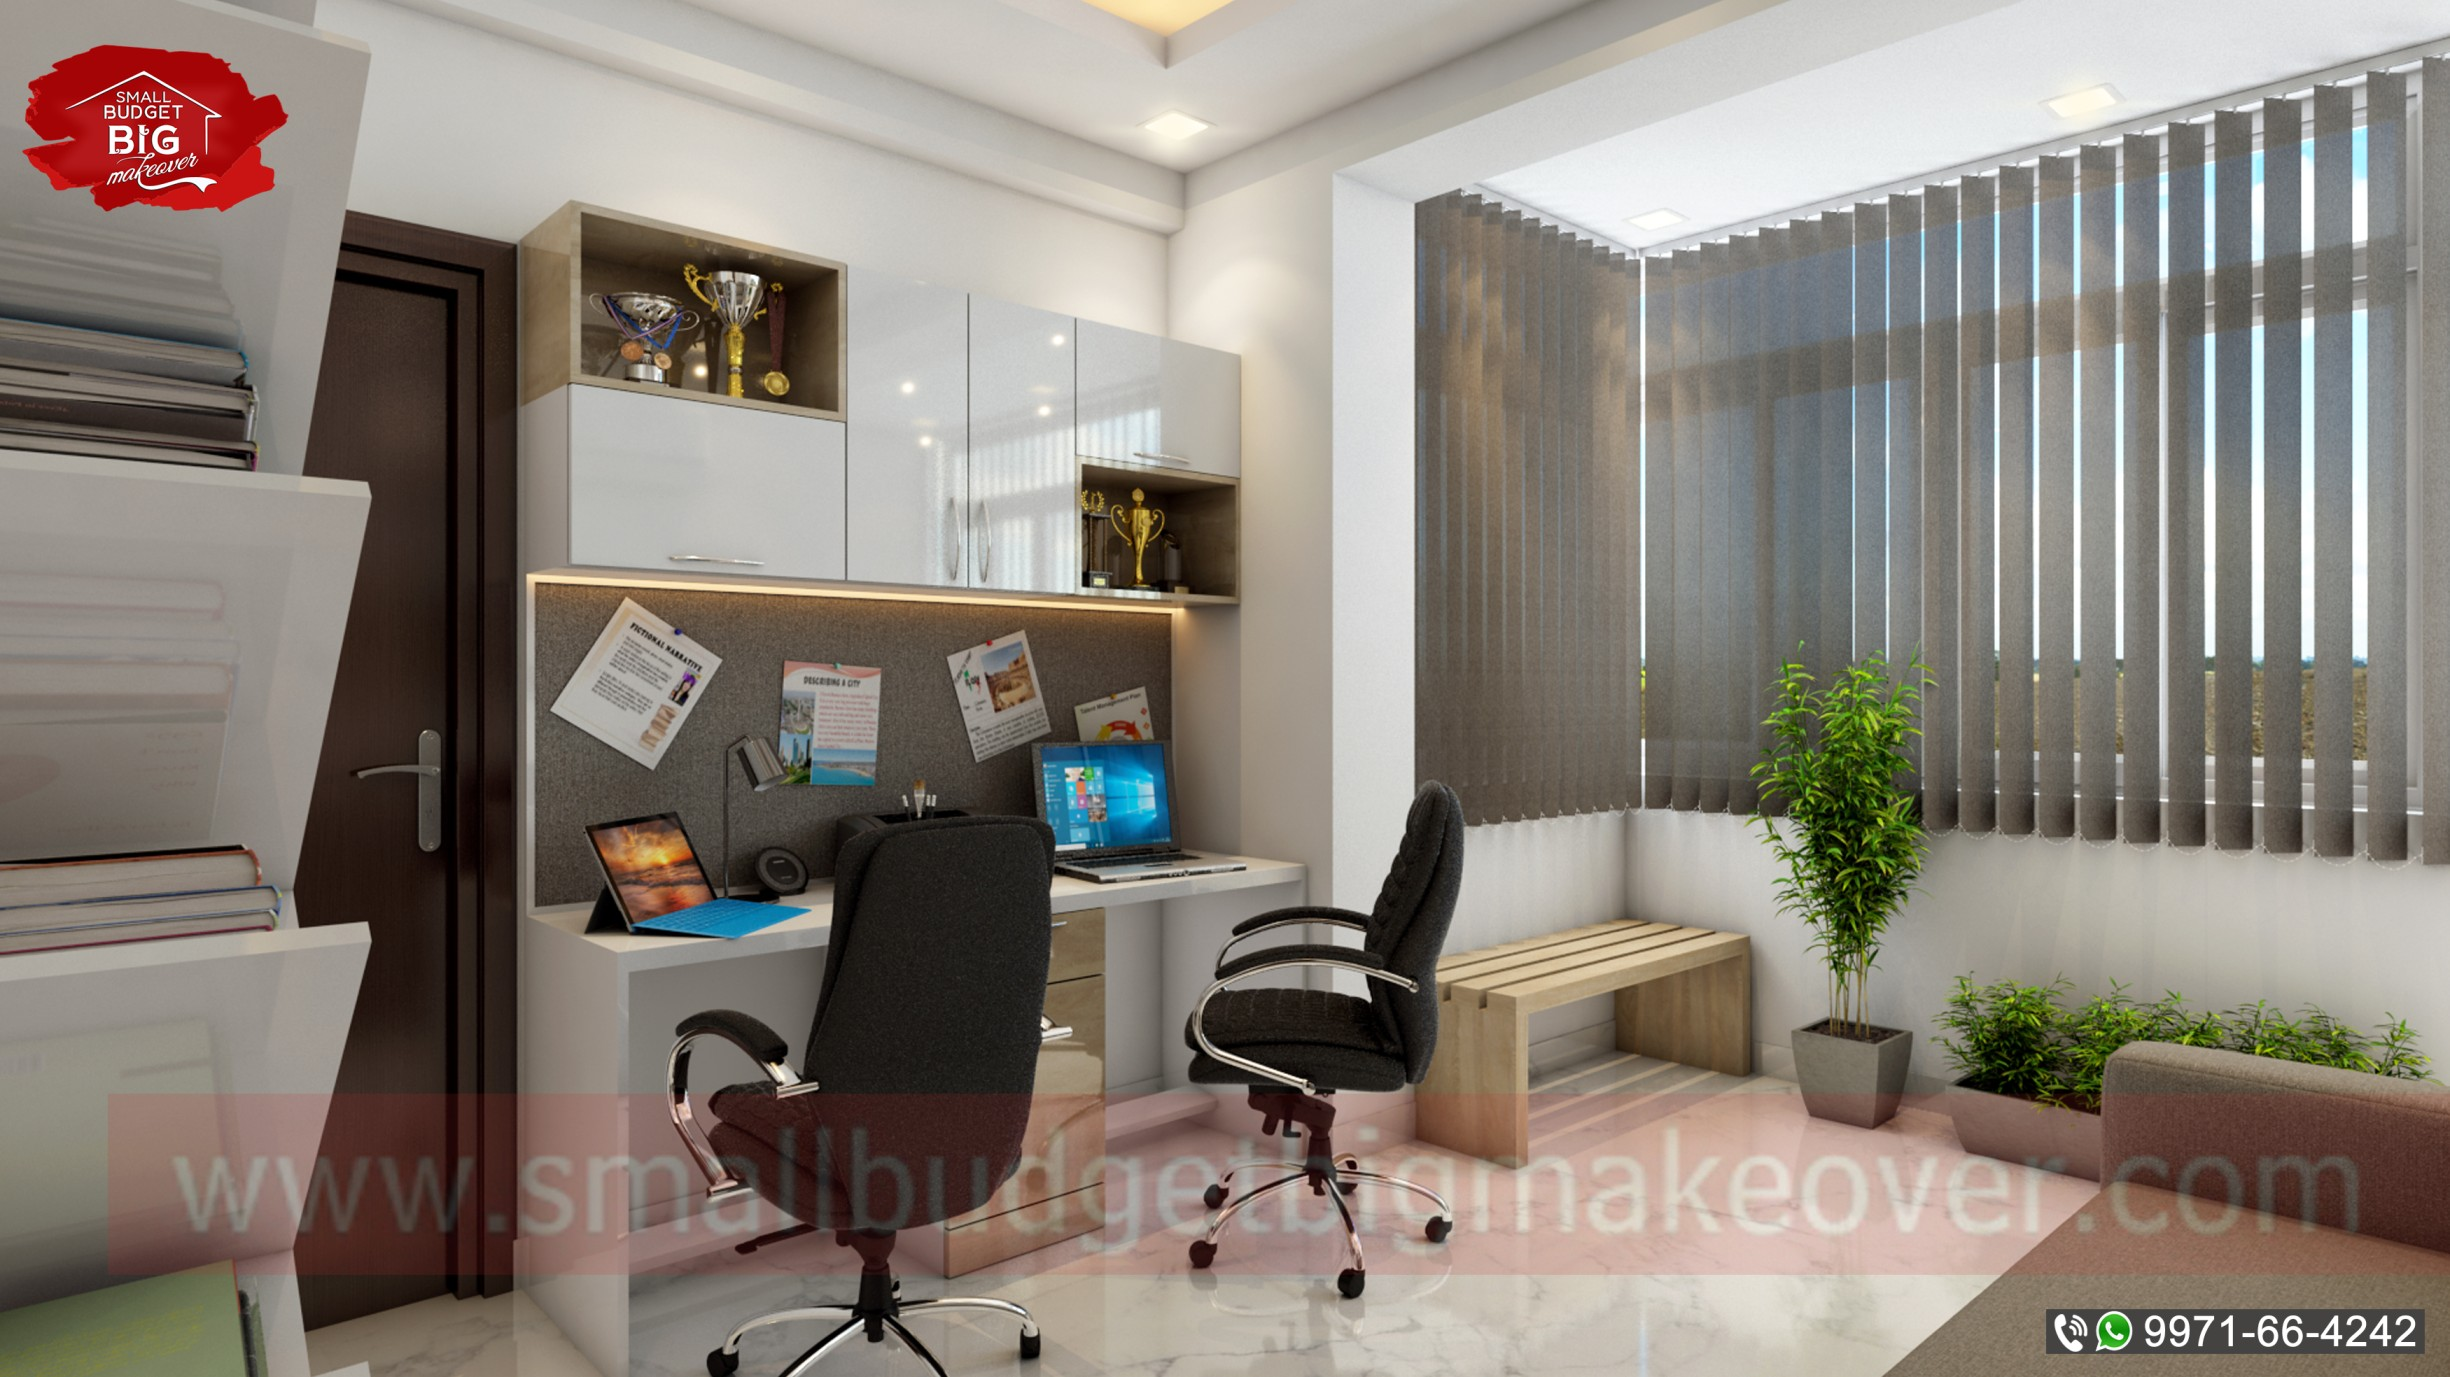 After-Study room